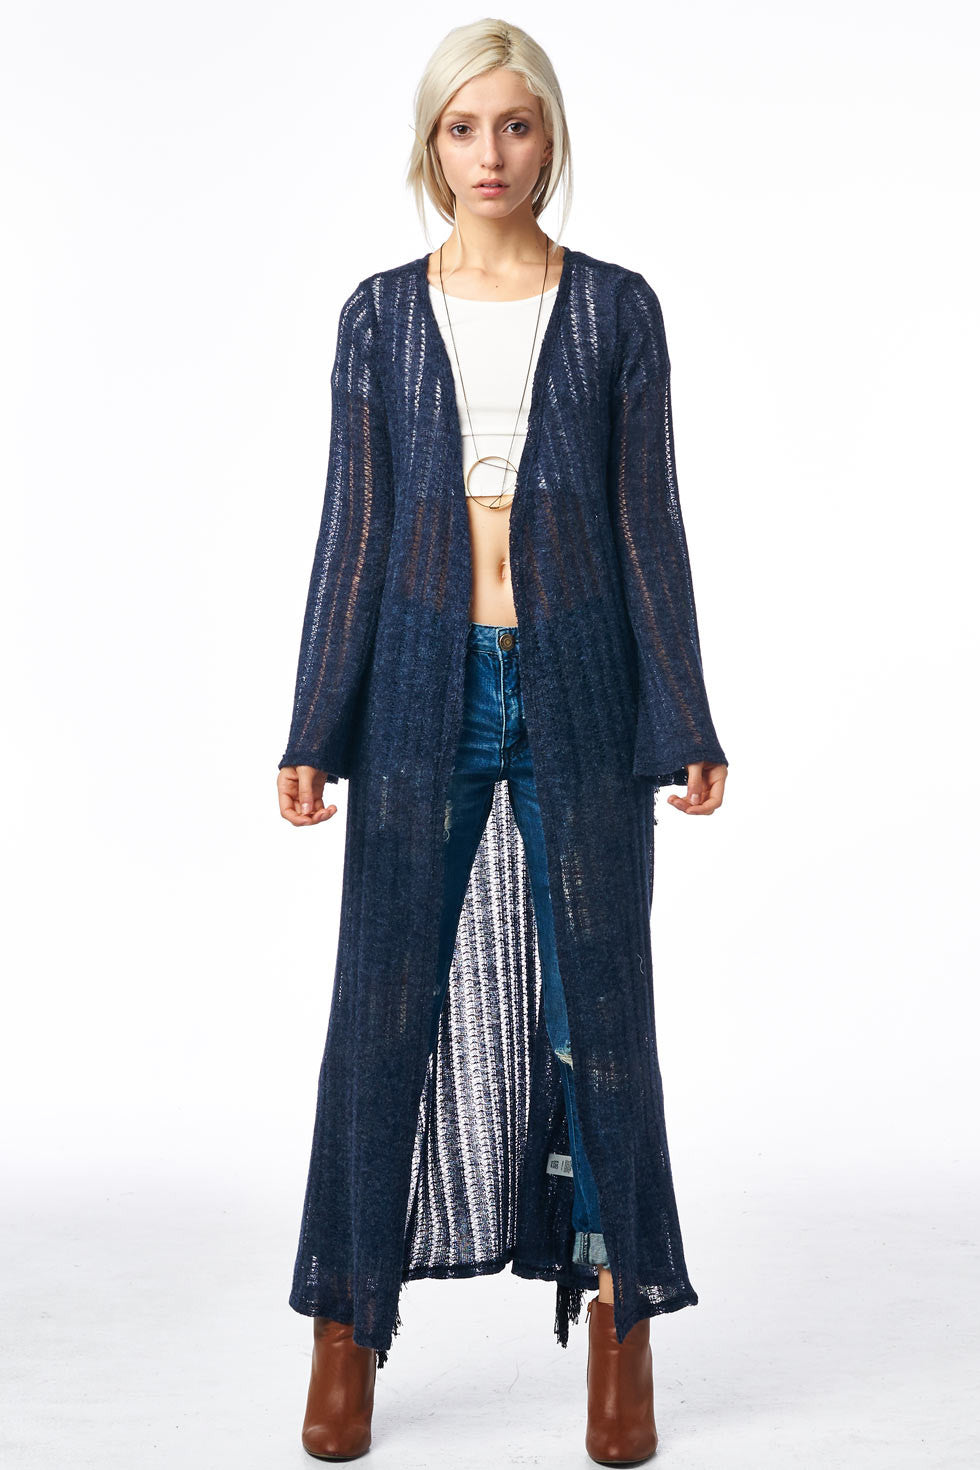 How To Wear A Long Cardigan to suit your denims and tops